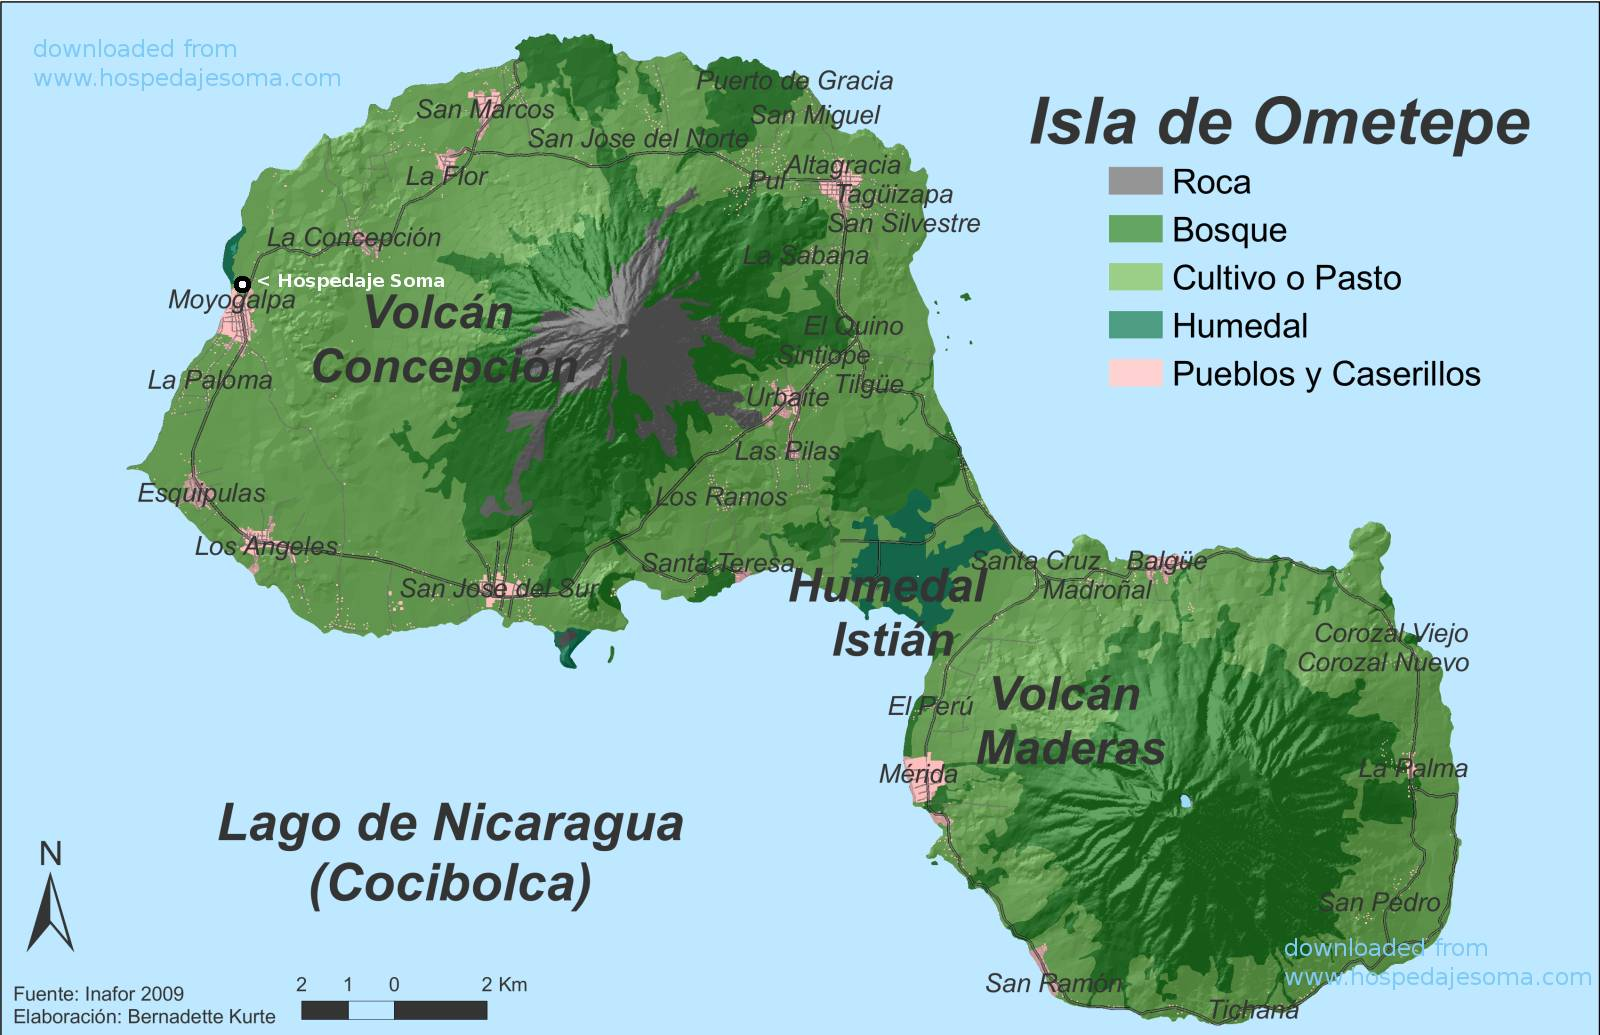 General Information About Ometepe And A Map Of The Island